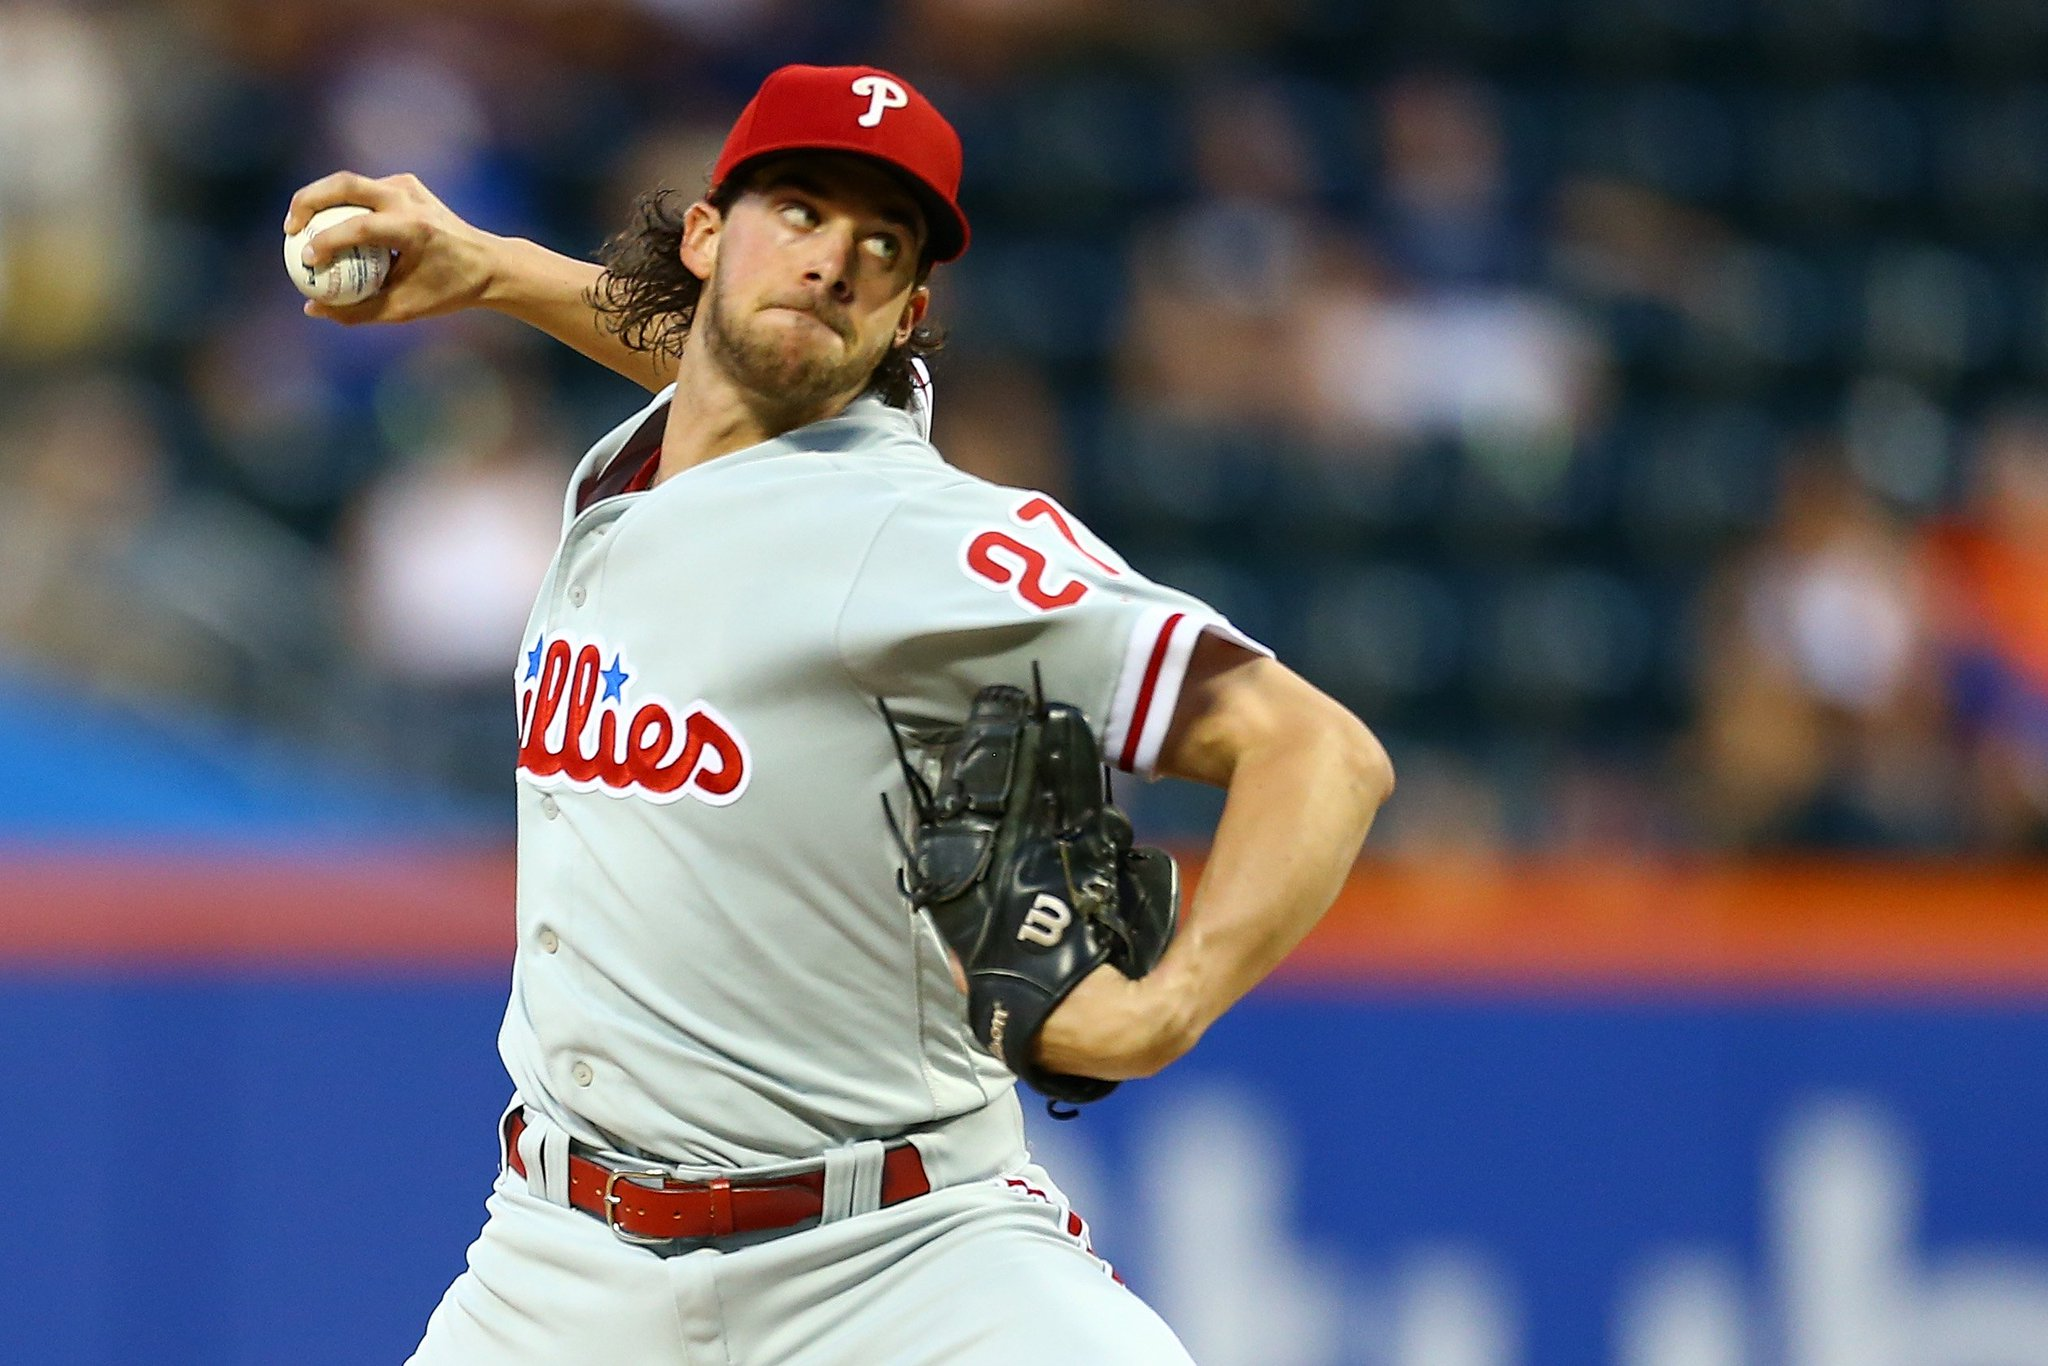 It is an absolute joy to watch you go to work every fifth day, @AaronNola027.  #GeauxPhils https://t.co/oi2Gwm5i7p